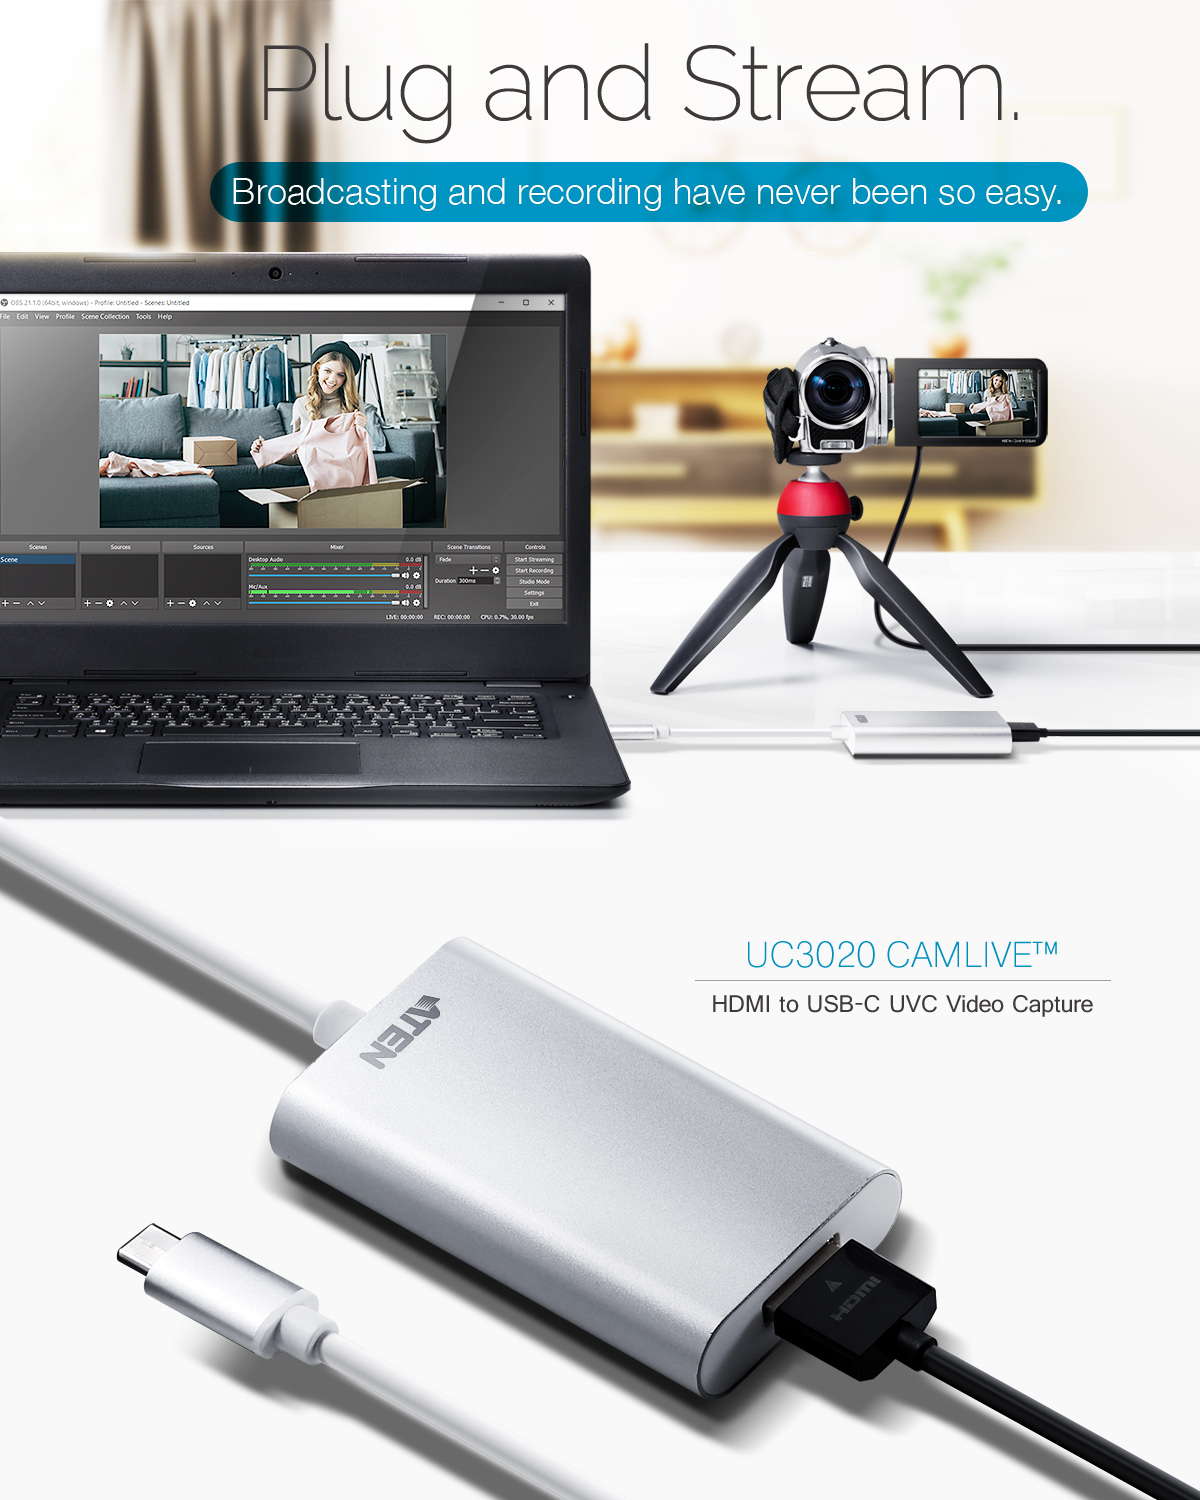 CAMLIVE™ (Captura Vídeo UVC HDMI para USB-C UVC)-2